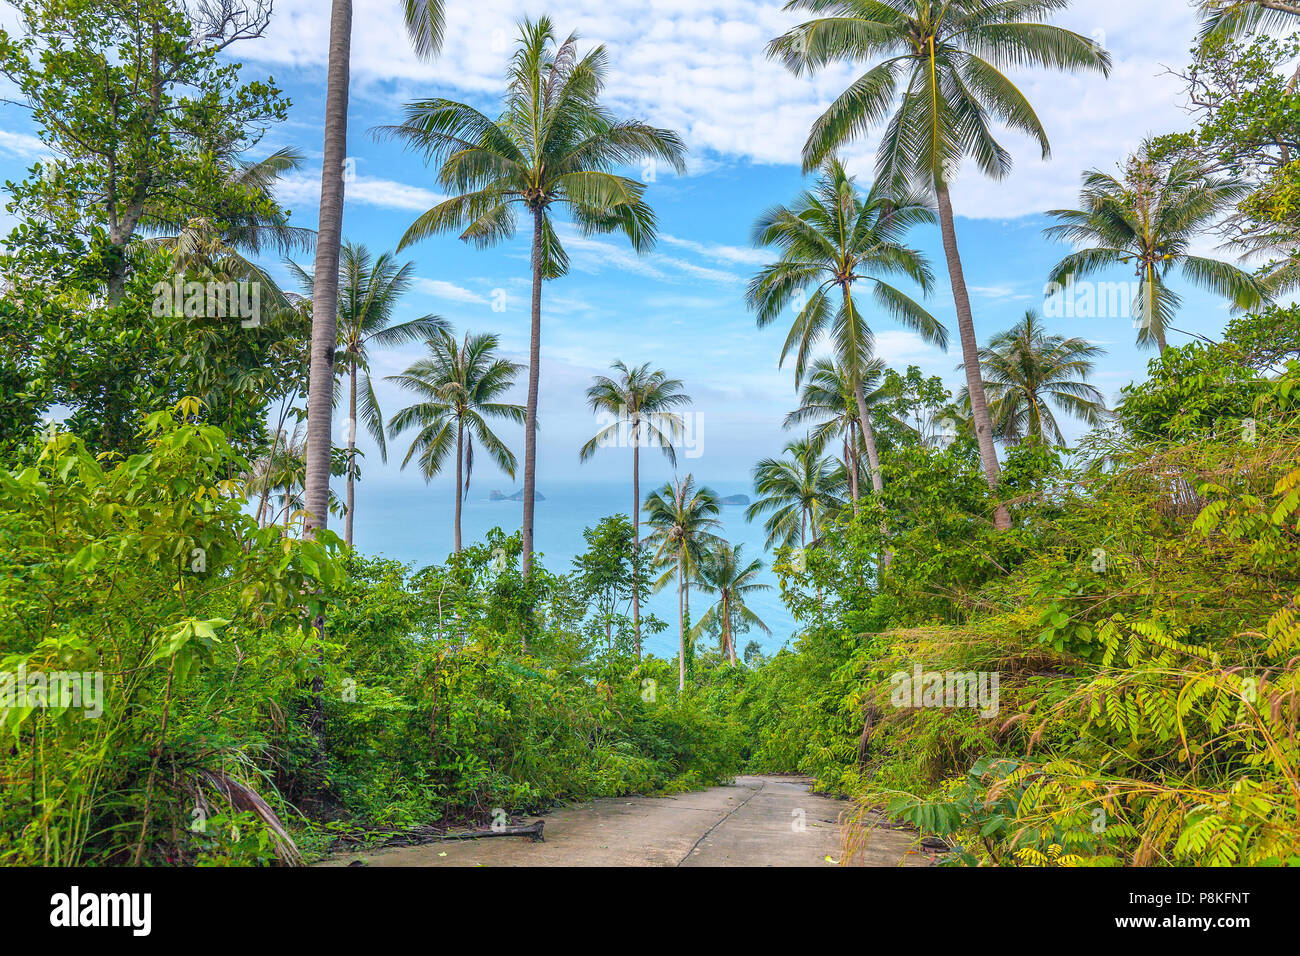 The nature of Koh Samui in Thailand. - Stock Image